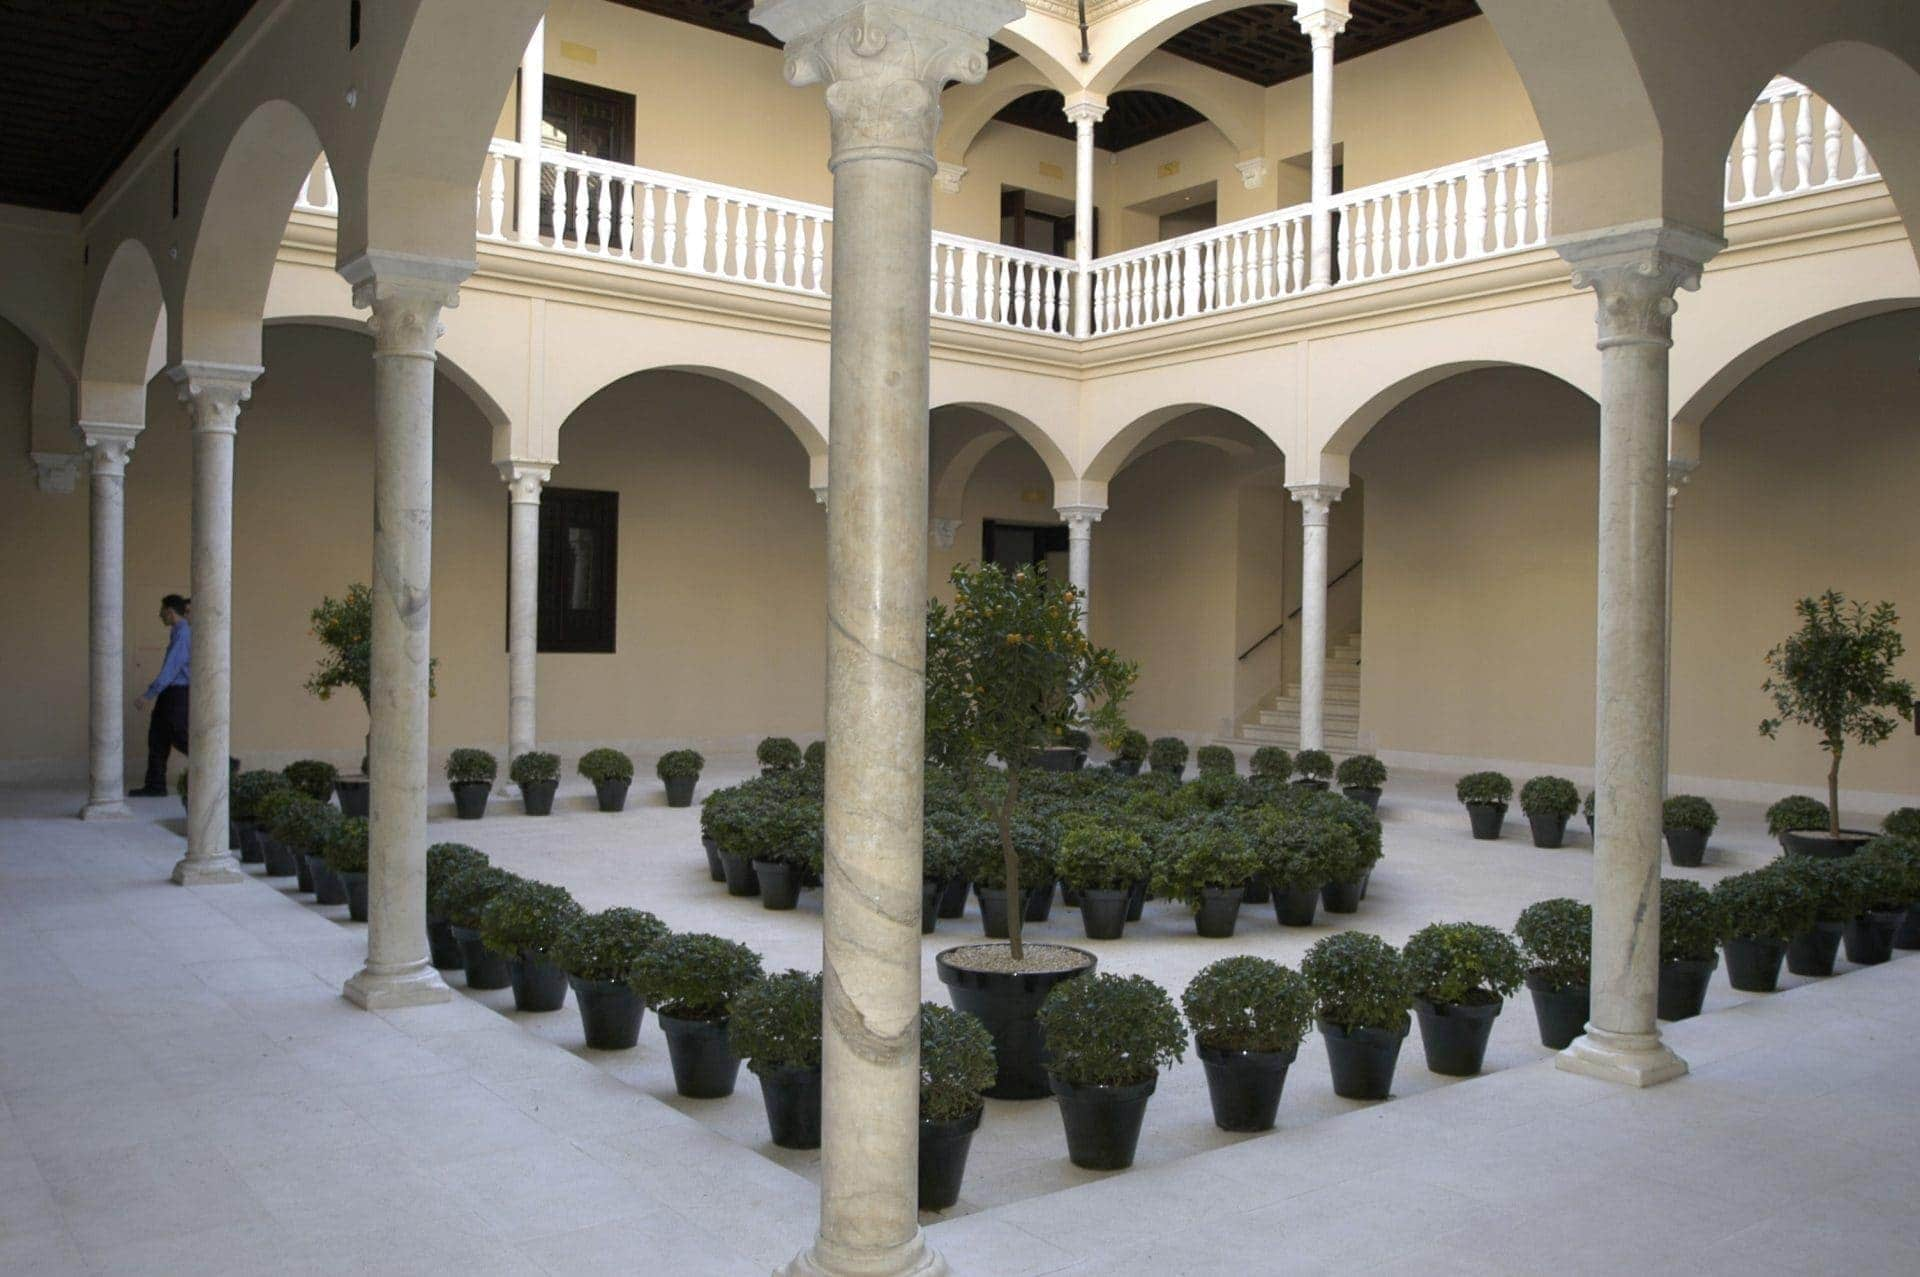 Picasso Museum, refurbished by Ferrovial Agroman